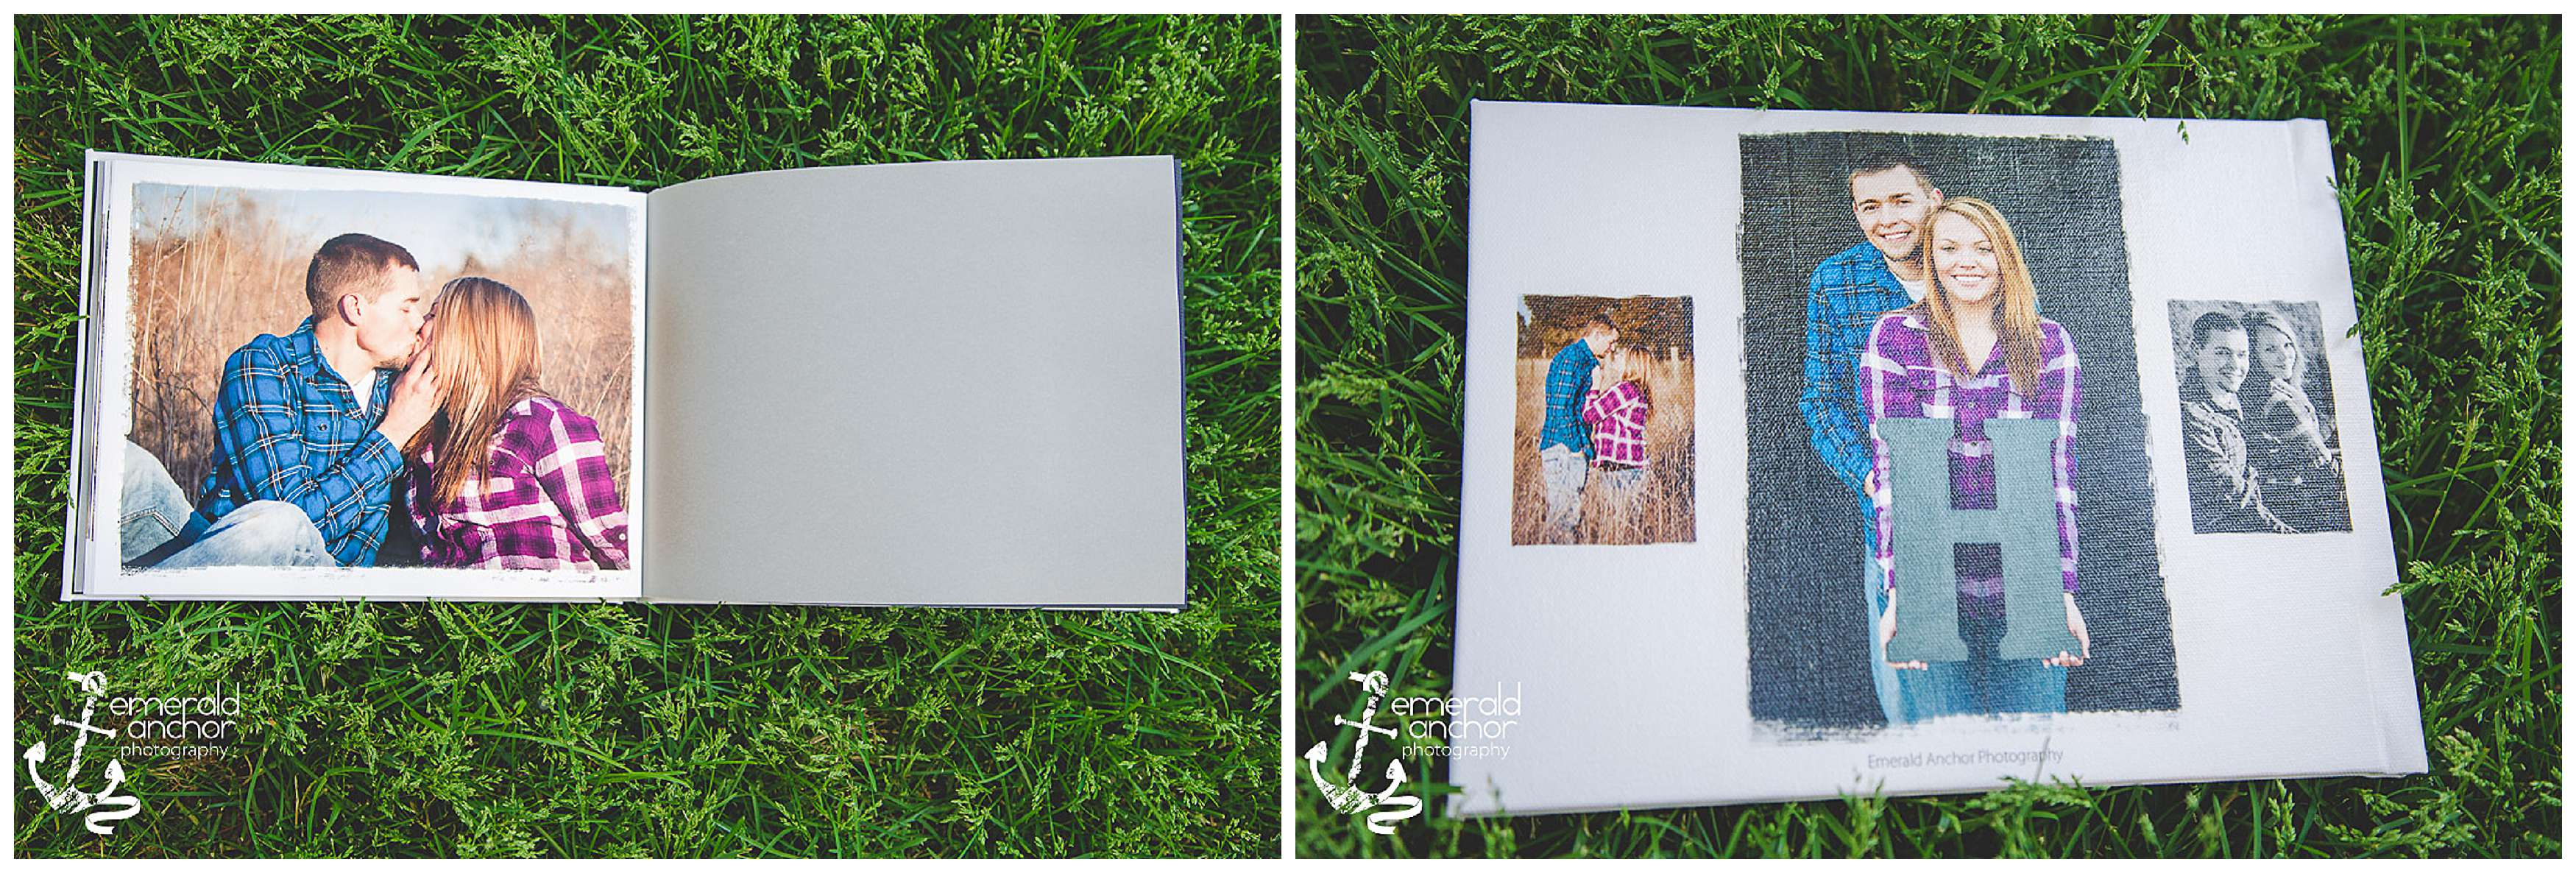 Emerald anchor photography engagement album guest book